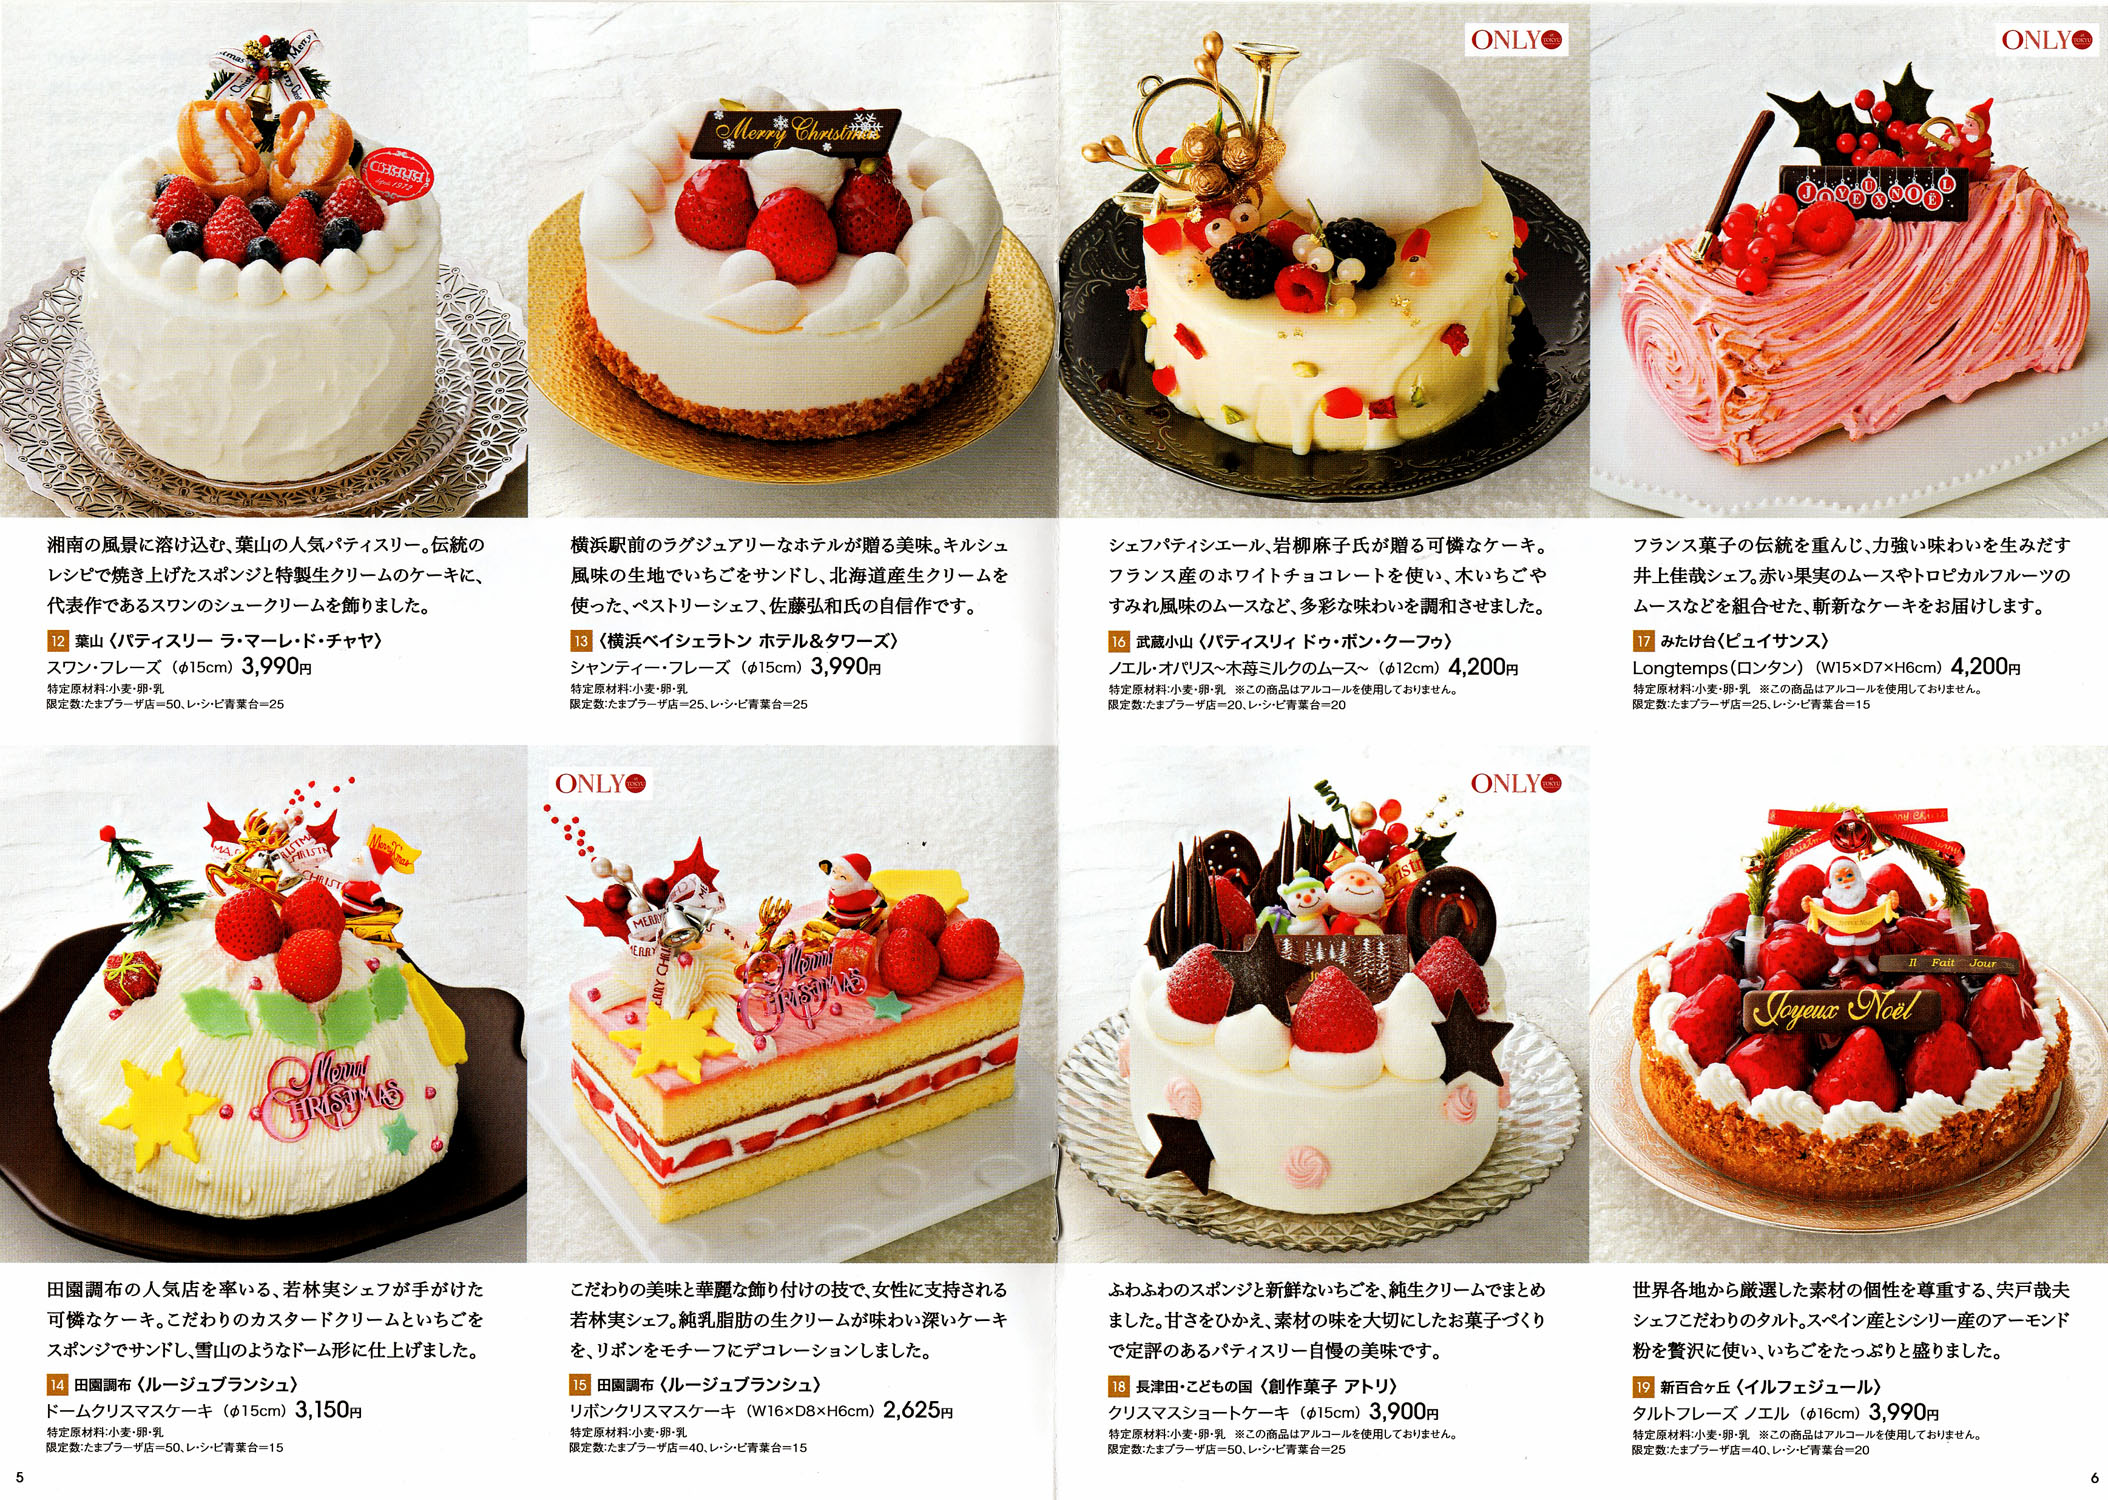 Japanese Christmas Cake.Received Our New Japan Christmas Cakes Today Squaredcircle